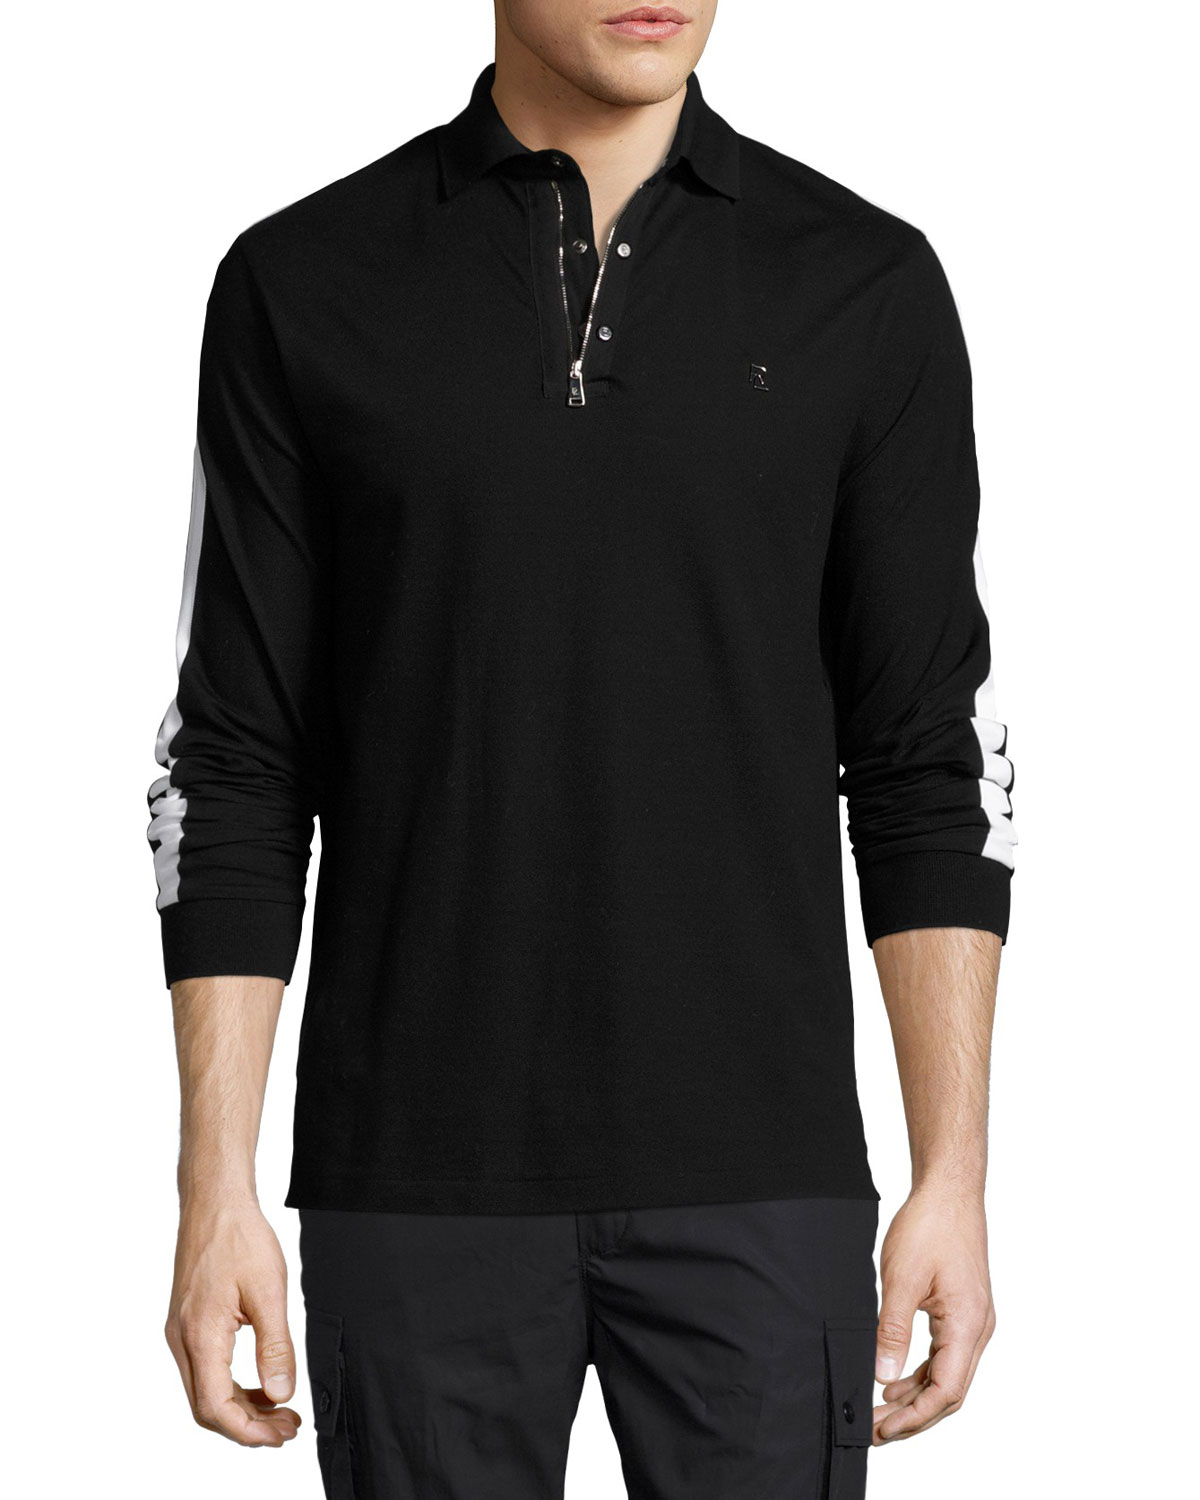 Striped-Sleeve Zip-Front Polo Sweater, Black